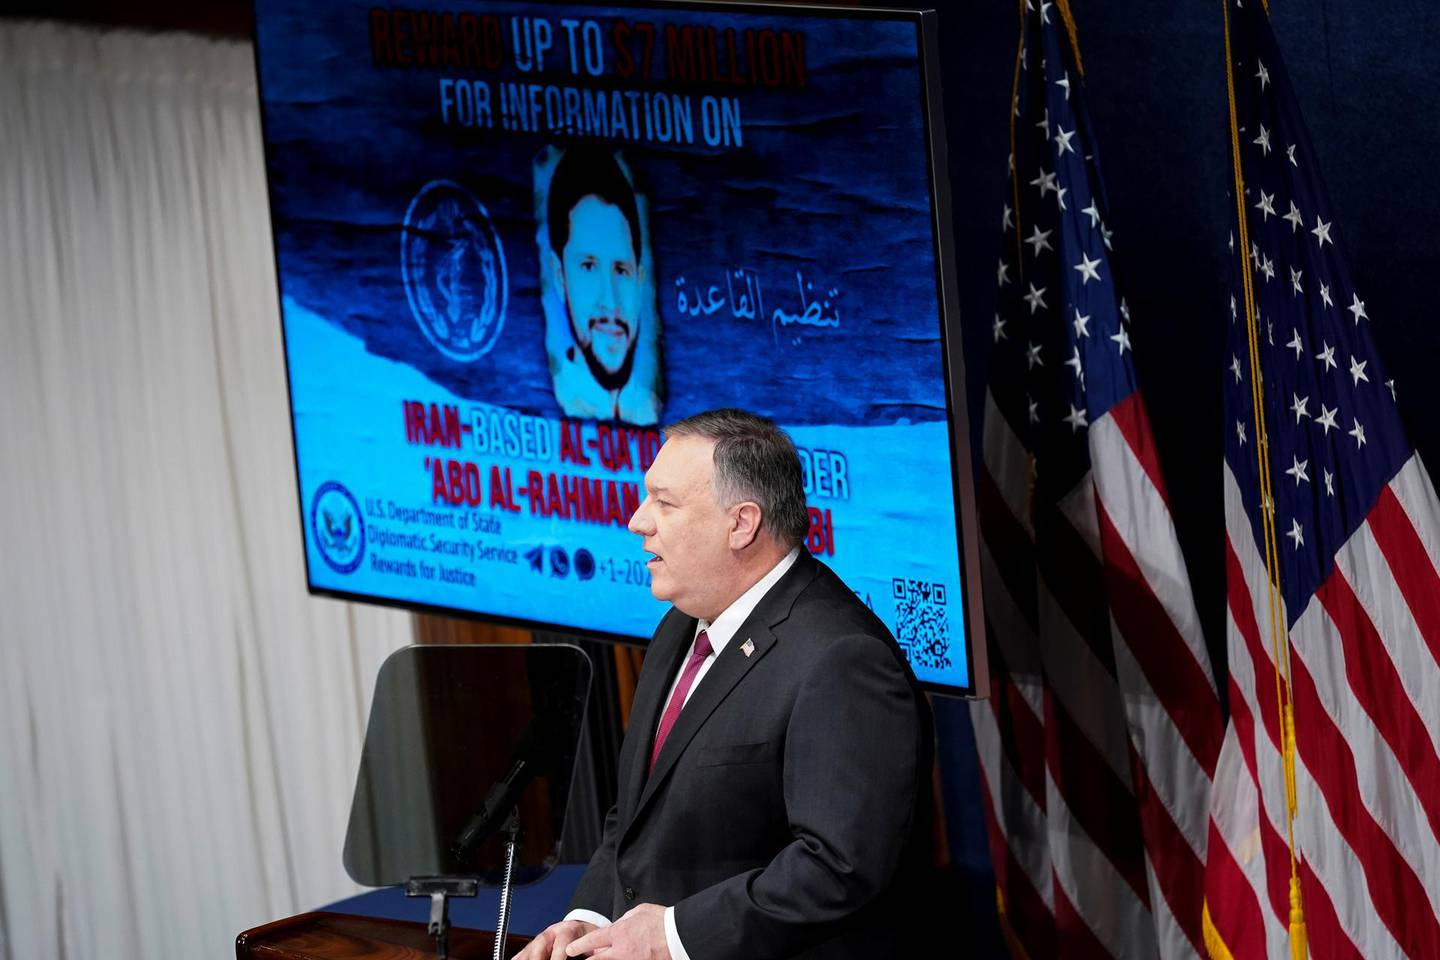 Secretary of State Mike Pompeo speaks at the National Press Club in Washington, DC, U.S., January 12, 2021. Andrew Harnik/Pool via REUTERS